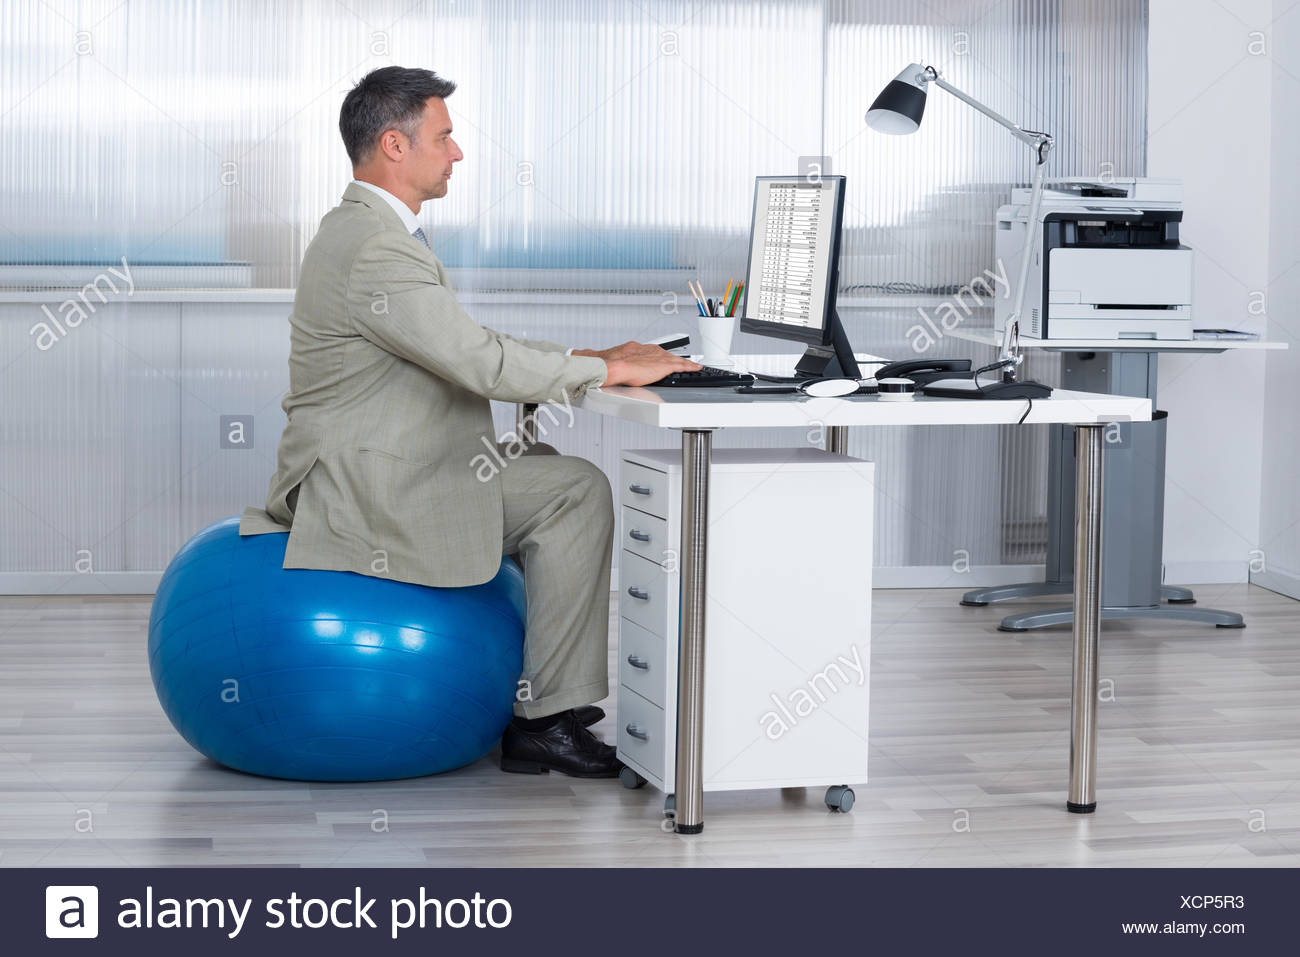 Businessman Using Computer While Sitting On Exercise Ball - Stock Image